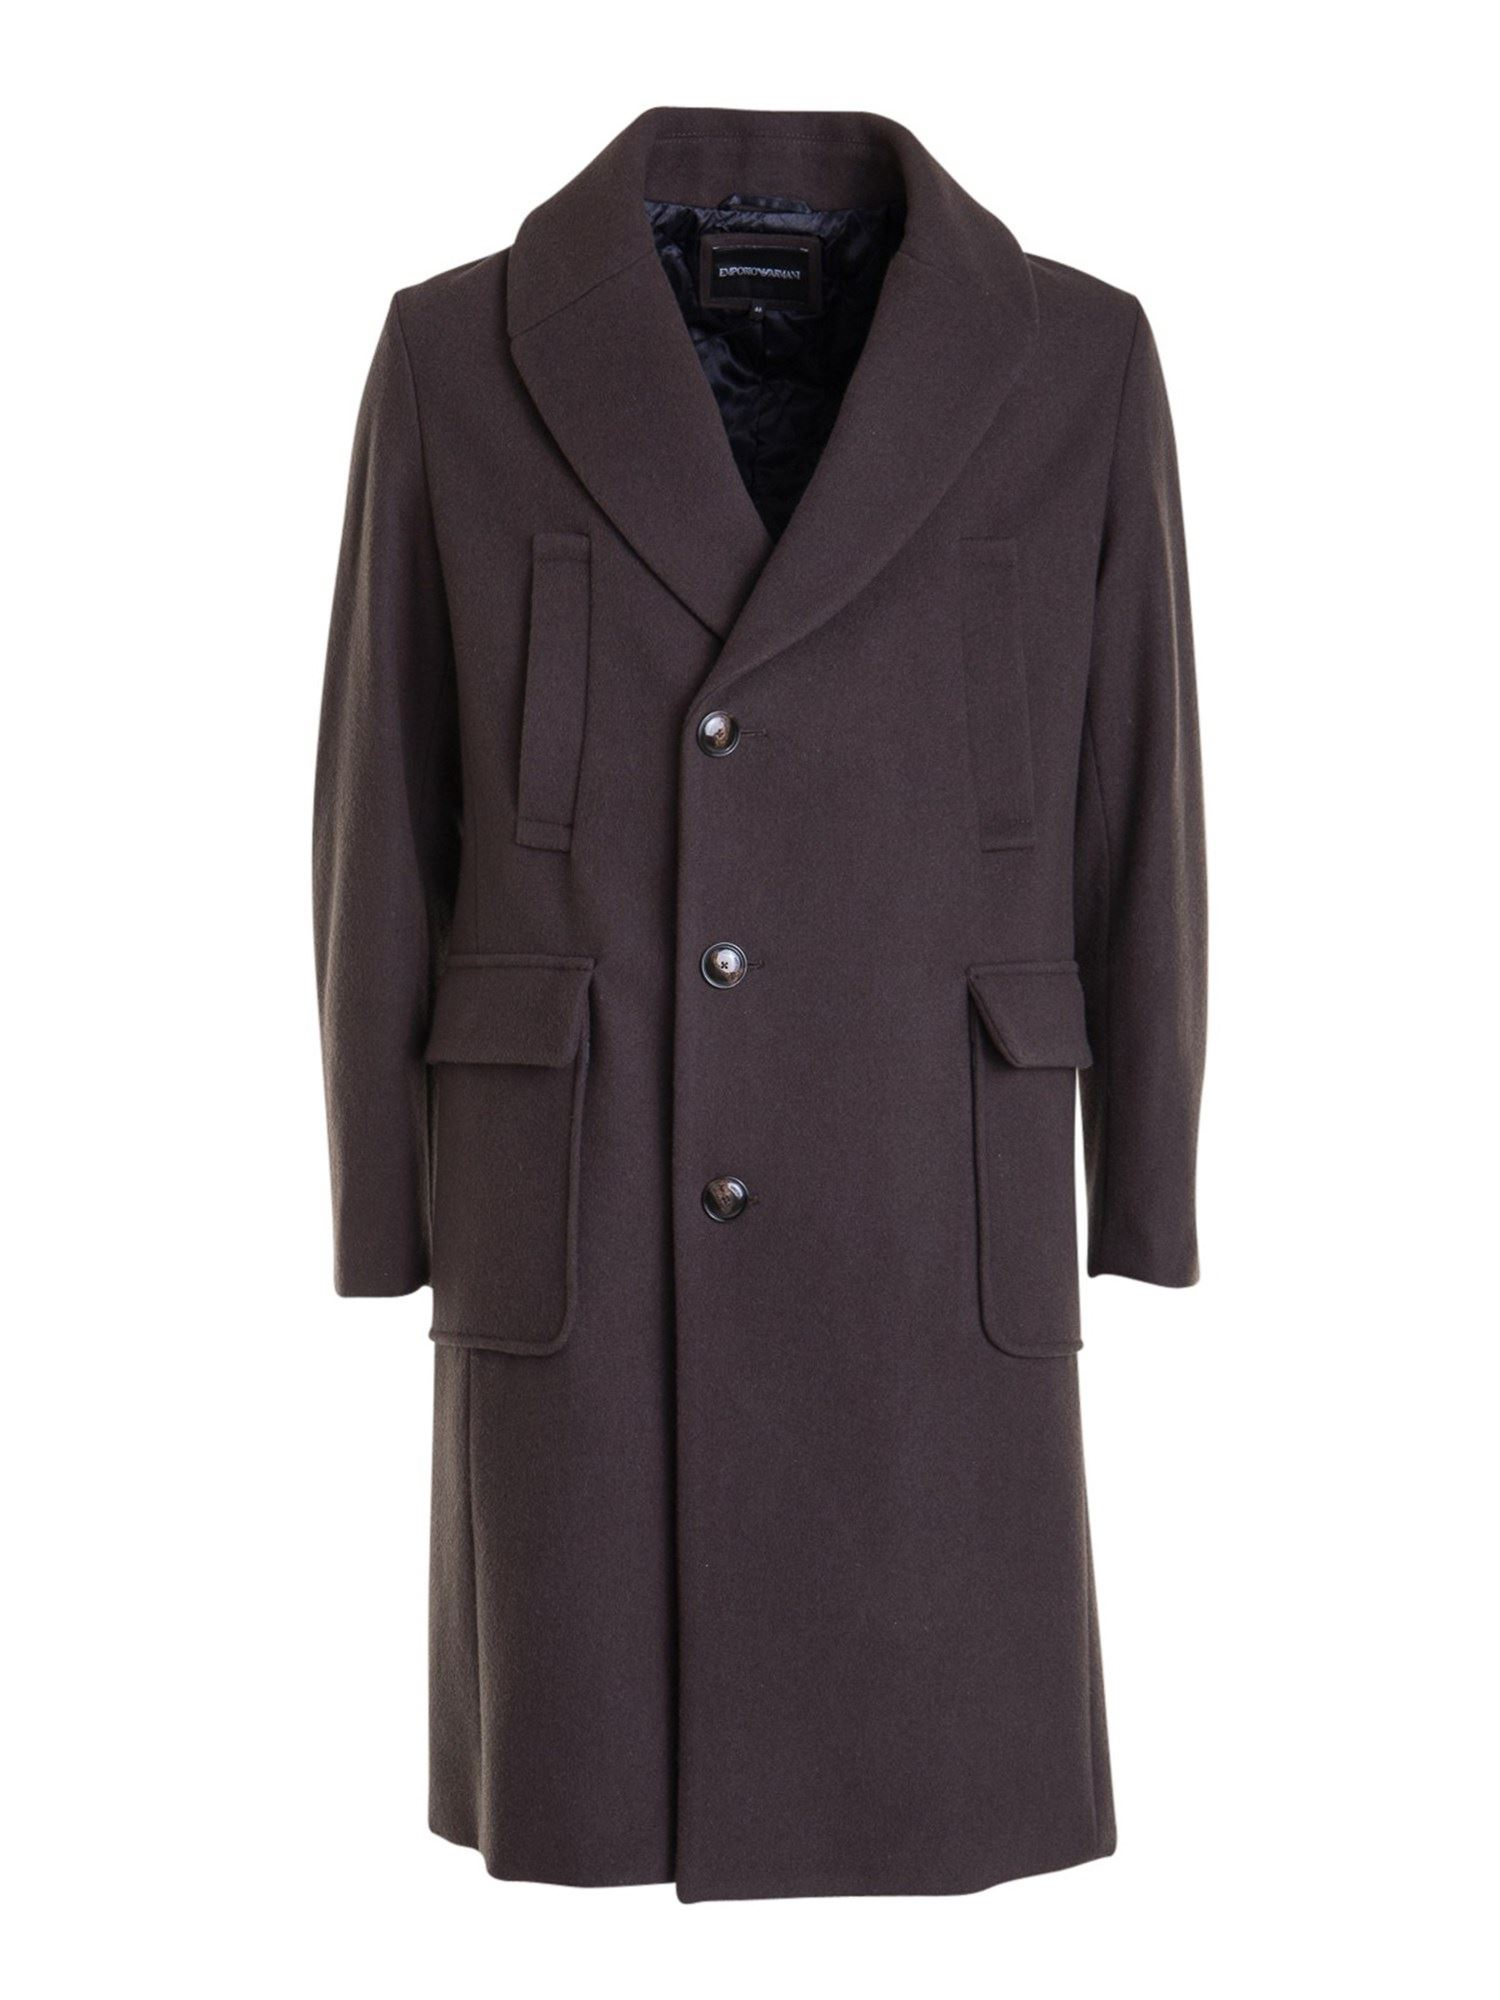 Emporio Armani Coats WOOL CLOTH KNEE LENGTH COAT IN BROWN